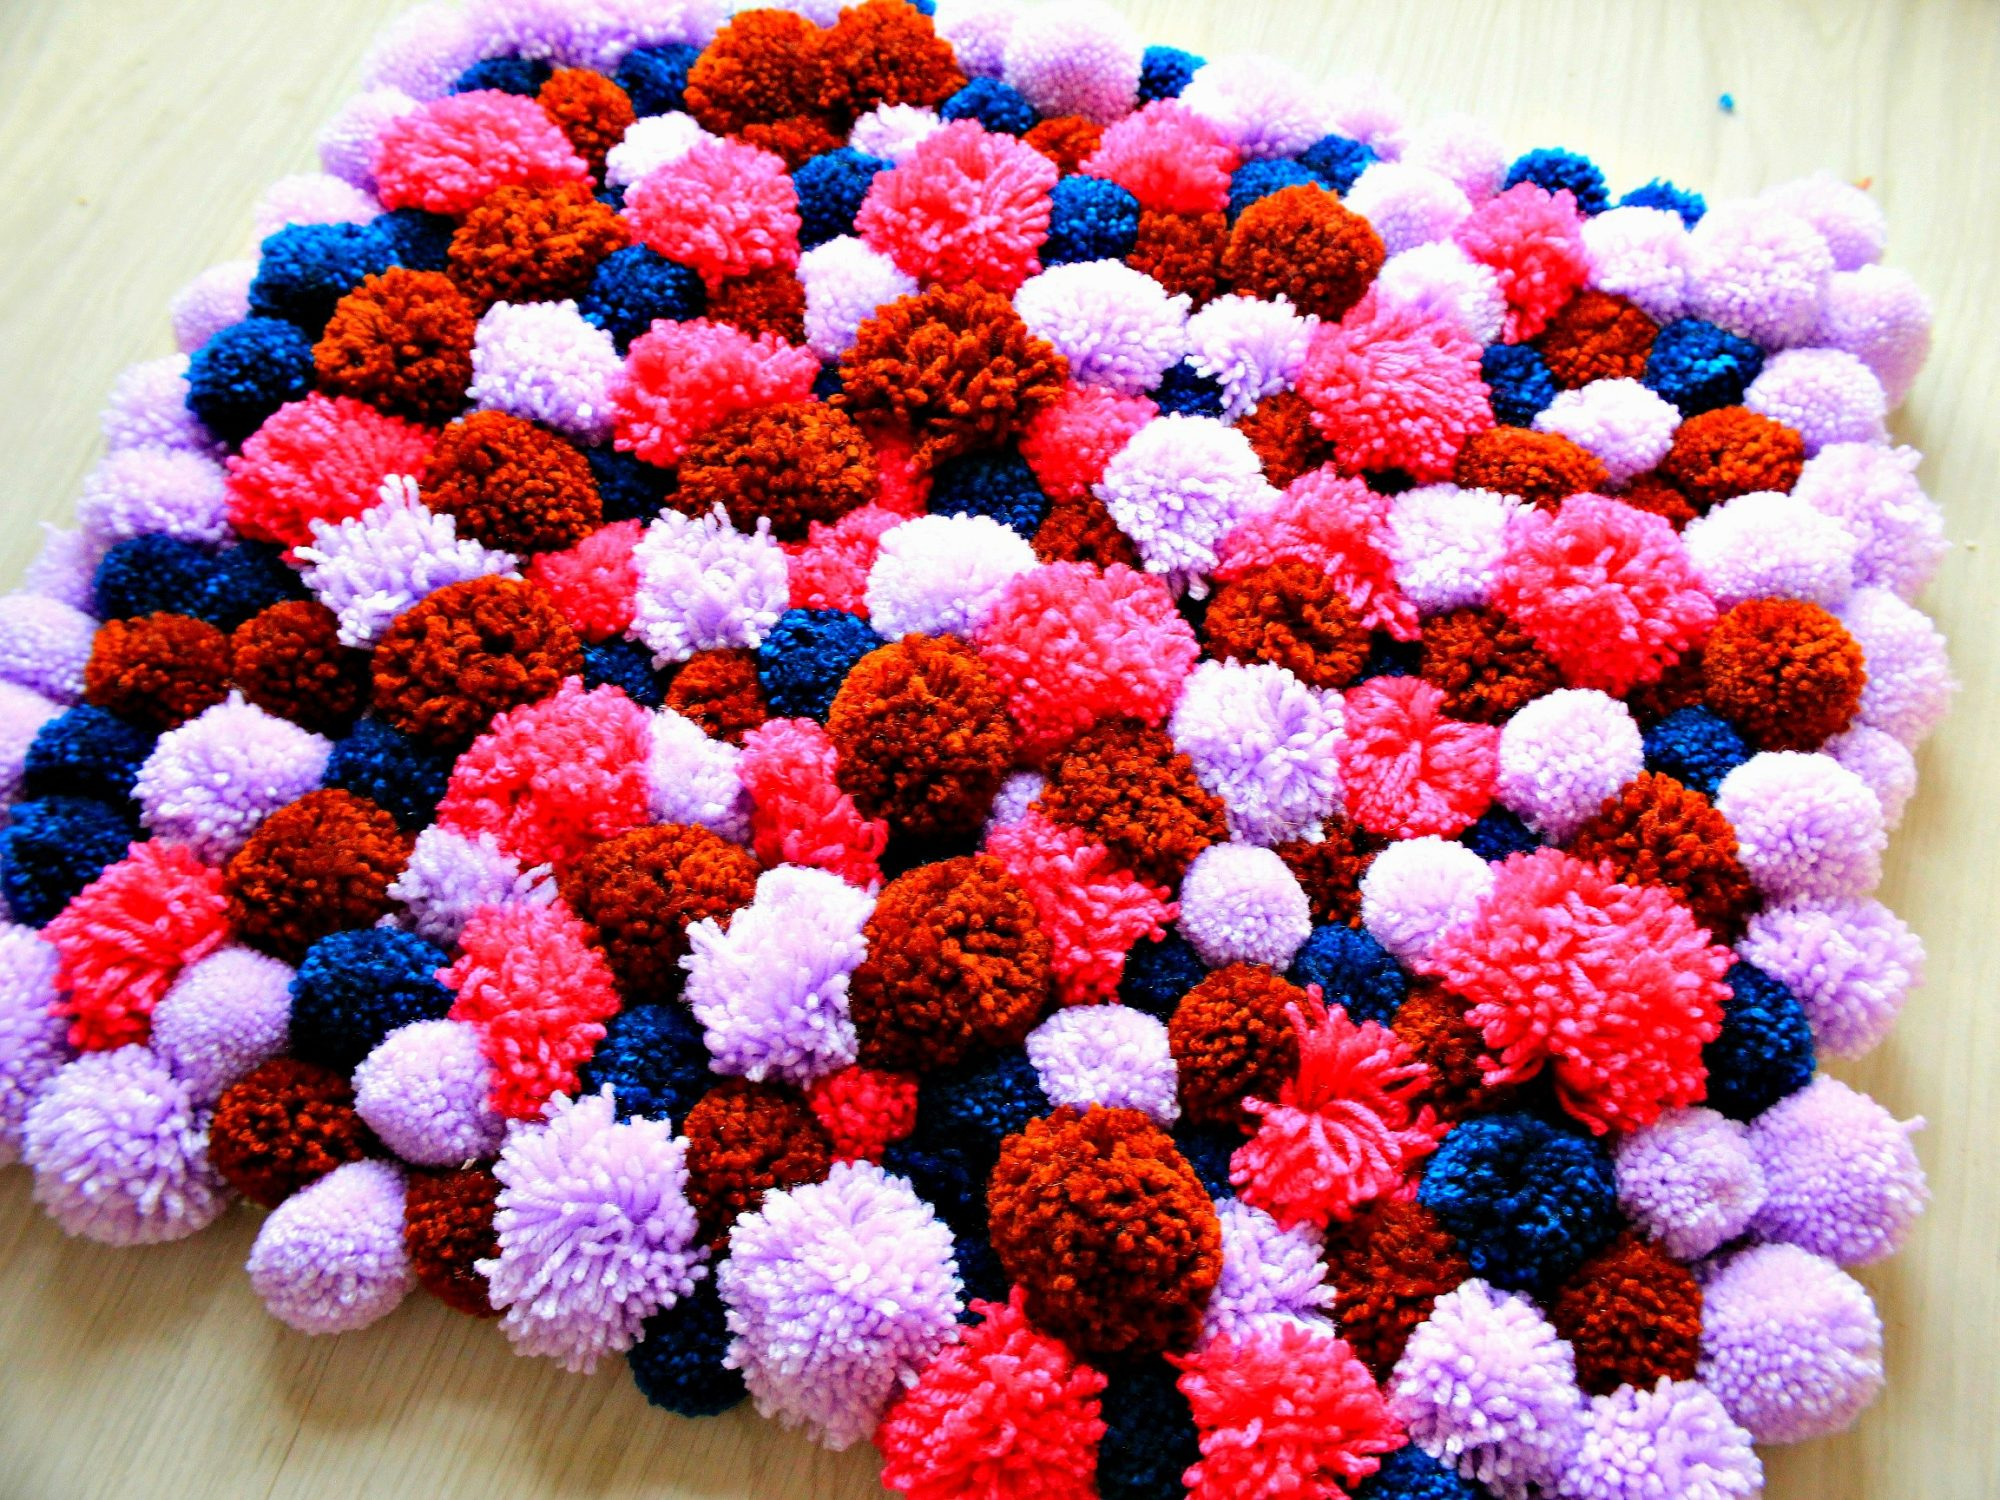 Diy Pom Pom Rug Super Easy To Make With Fluffy Wool Yarn